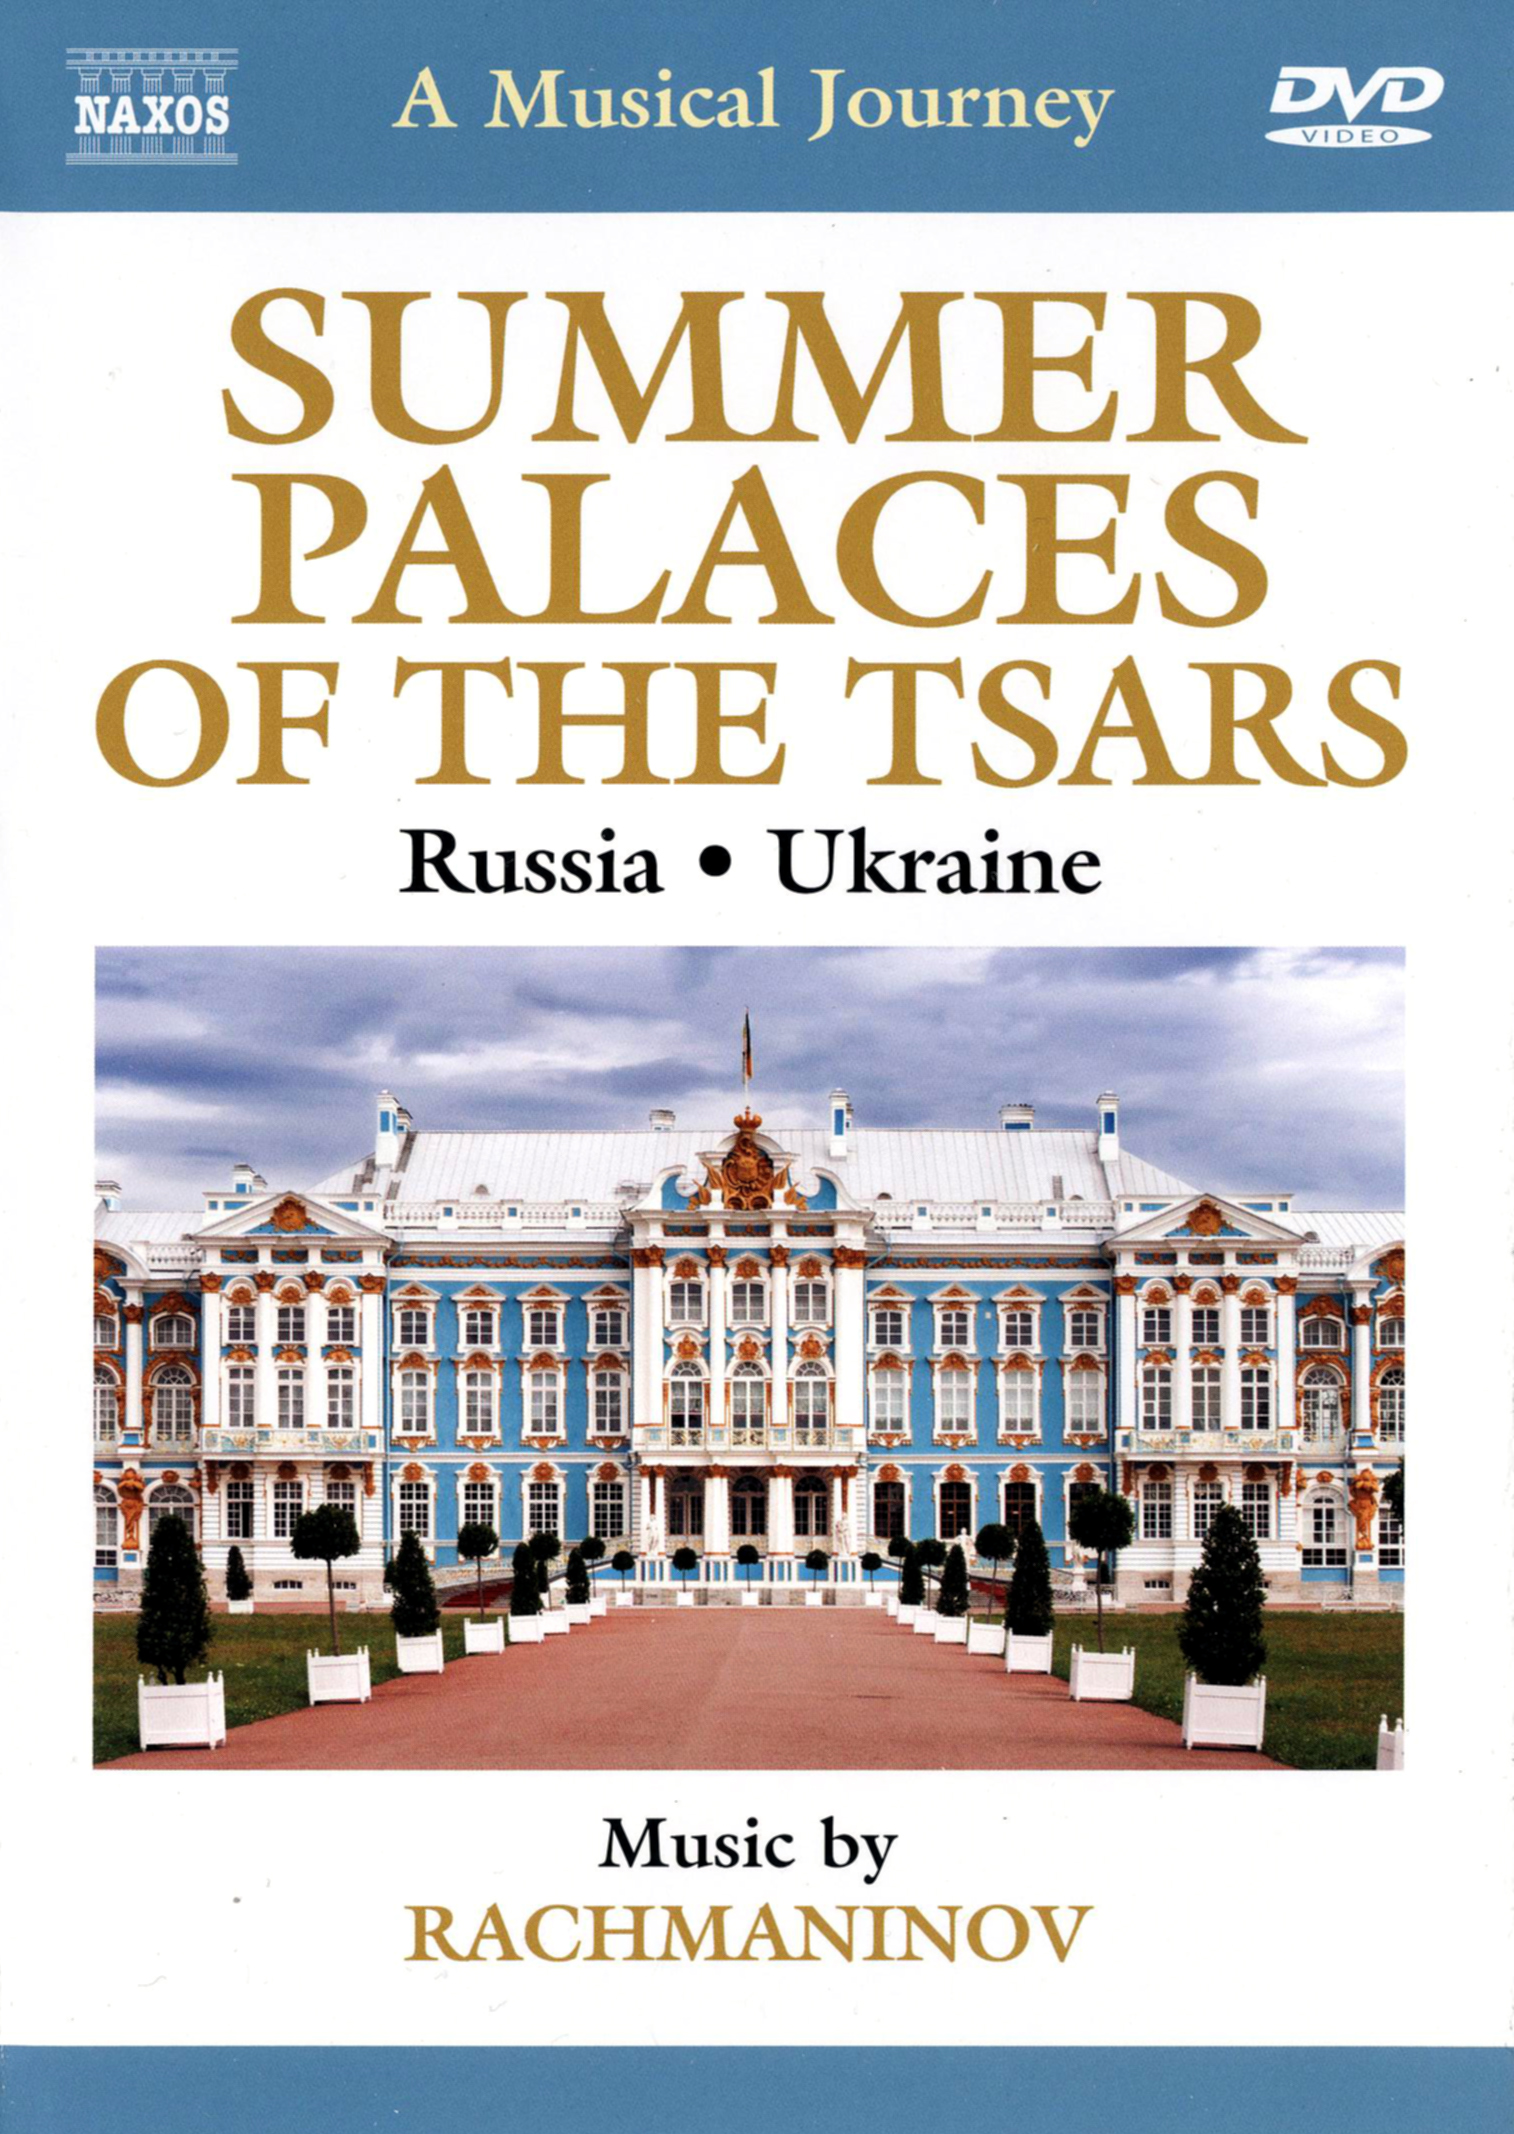 A Musical Journey: Summer Palaces of the Tsars - Russia/Ukraine